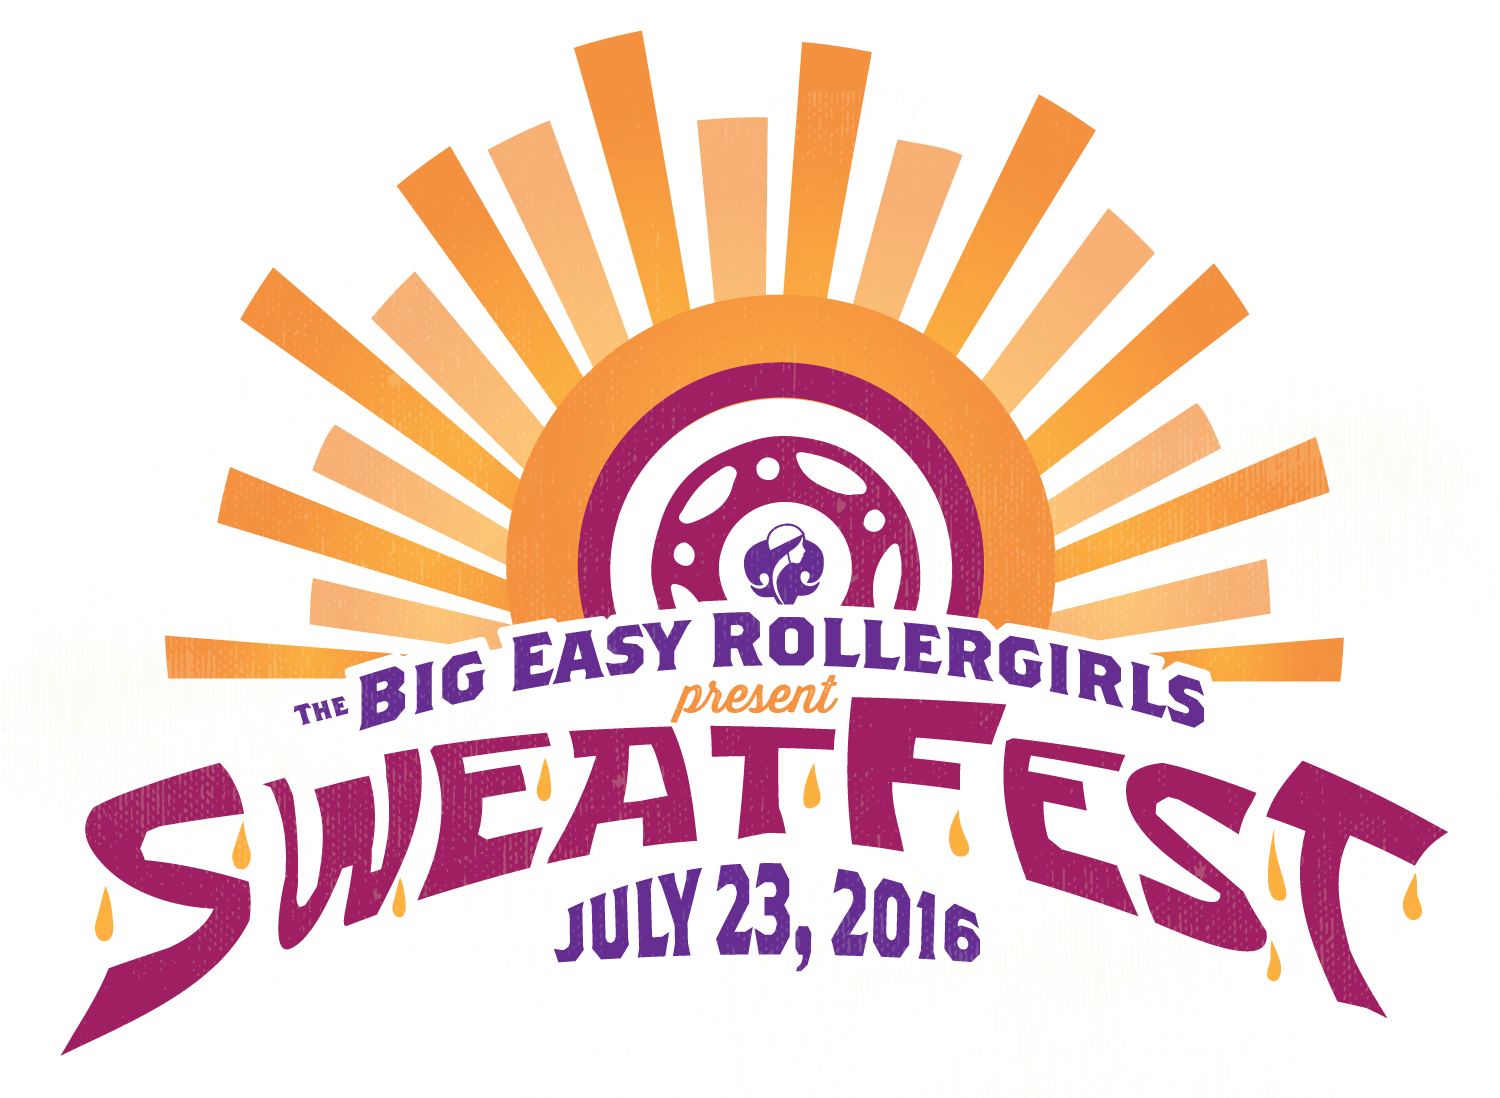 Sweatfest Rollerderby Tournament logo